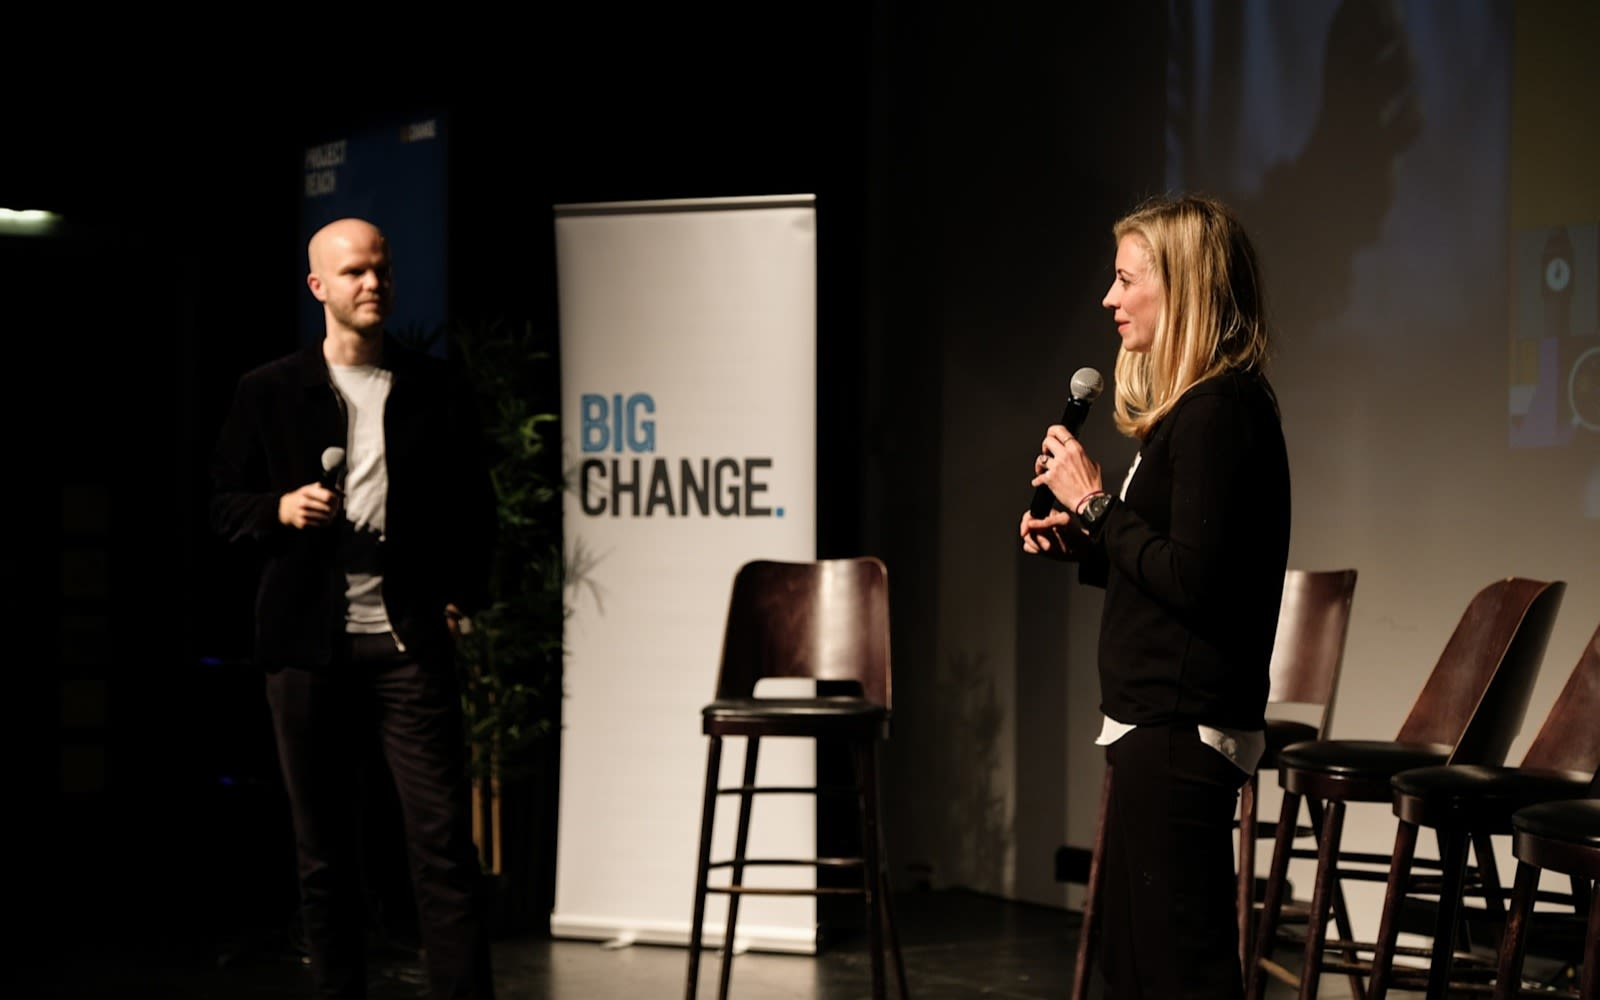 Noah Devereux and Holly Branson speaking on stage about Big Change